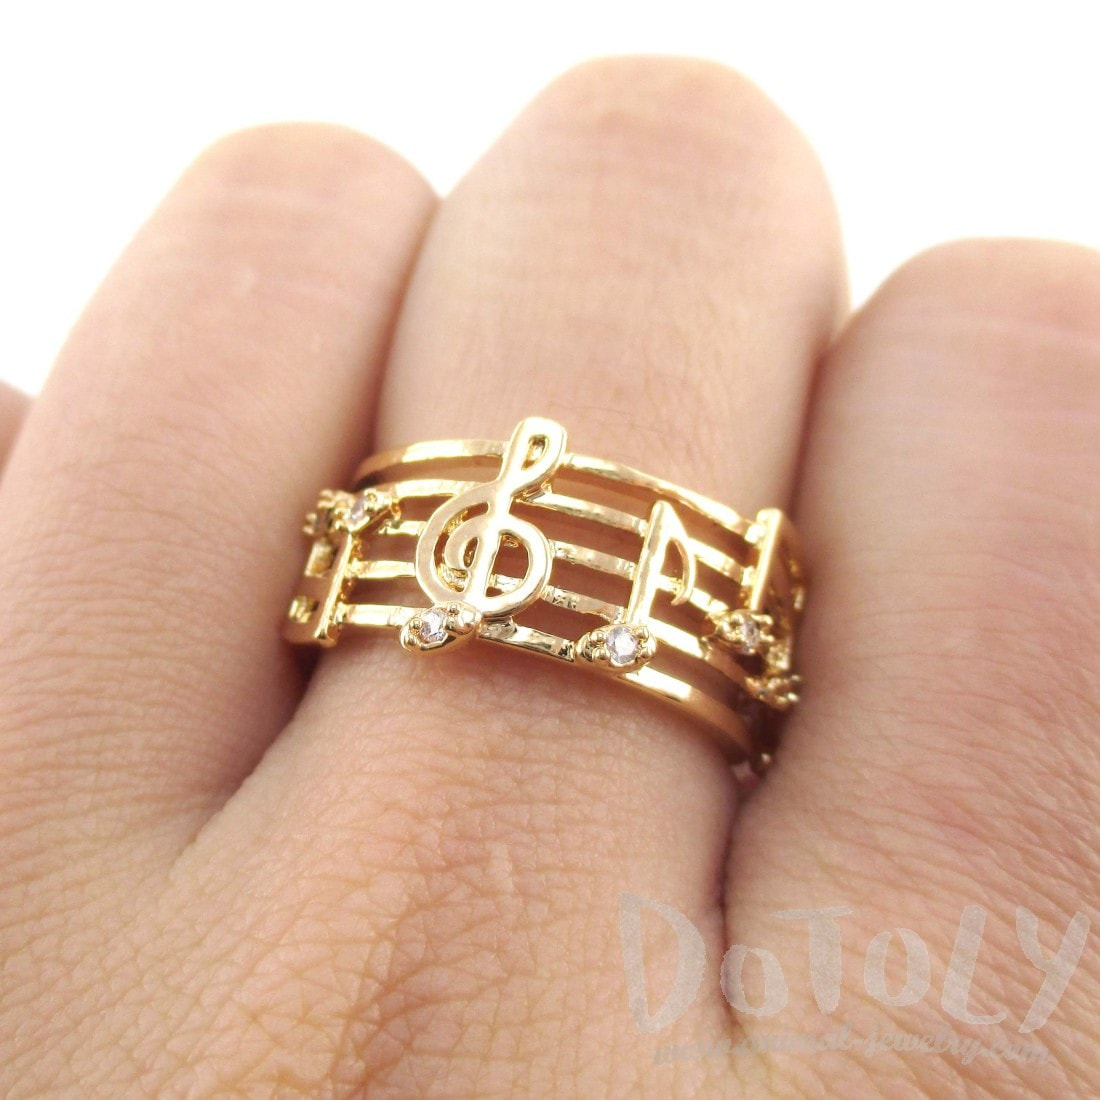 Musical Notes on Score Shaped Music Themed Ring in Gold